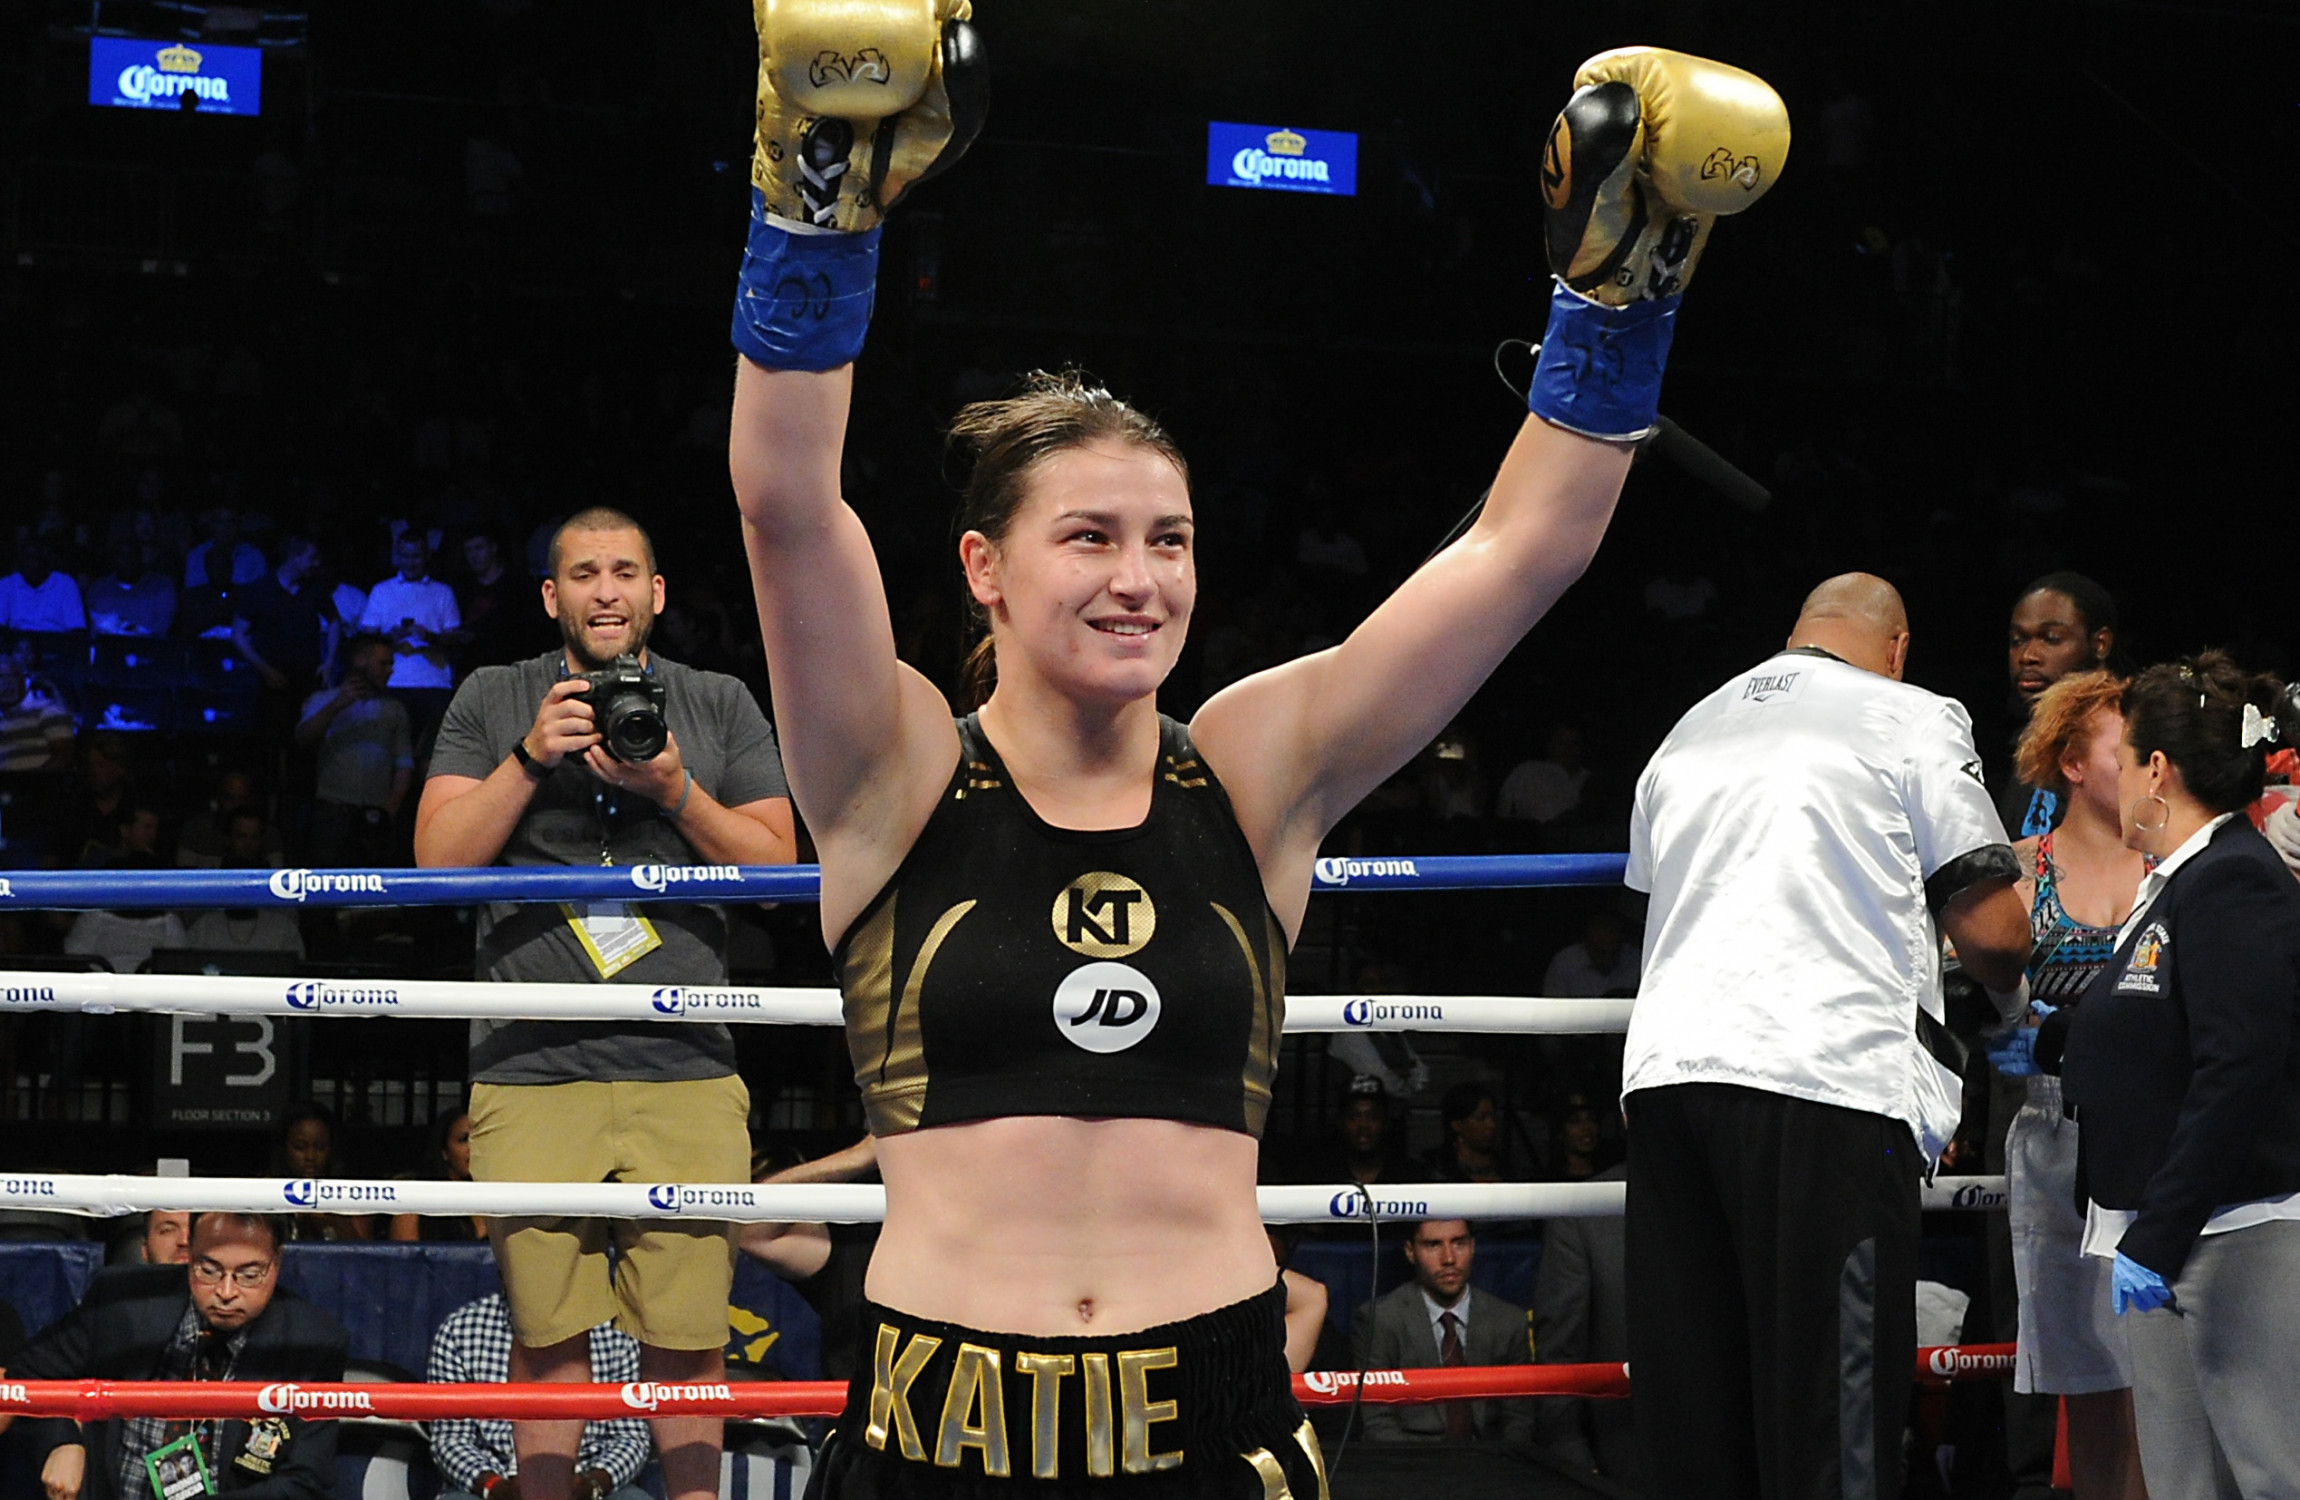 Katie Taylor to make first defence of world title on December 15